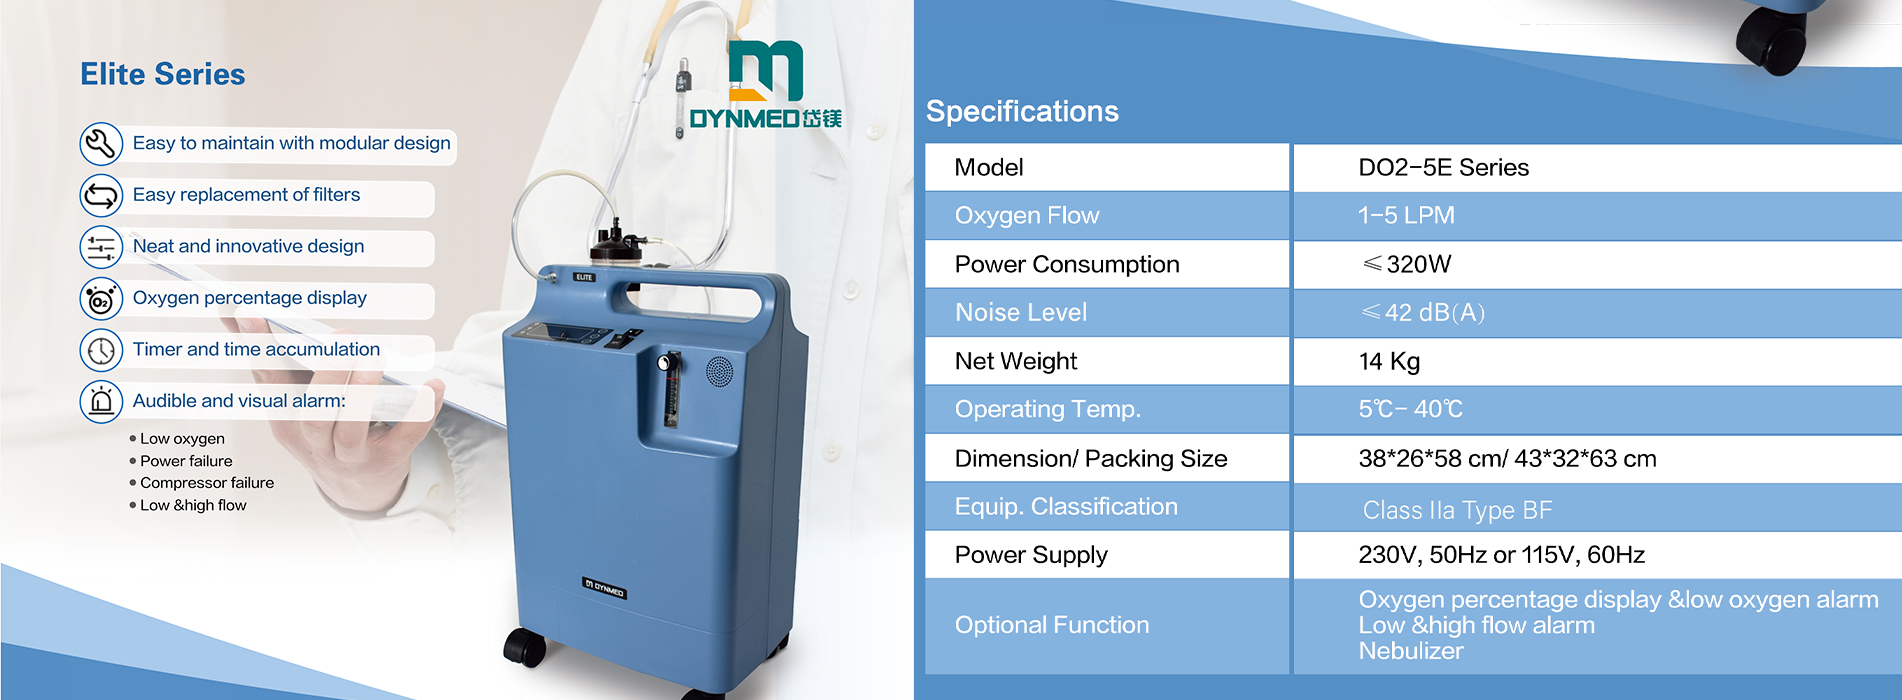 New 5L oxygen concentrator